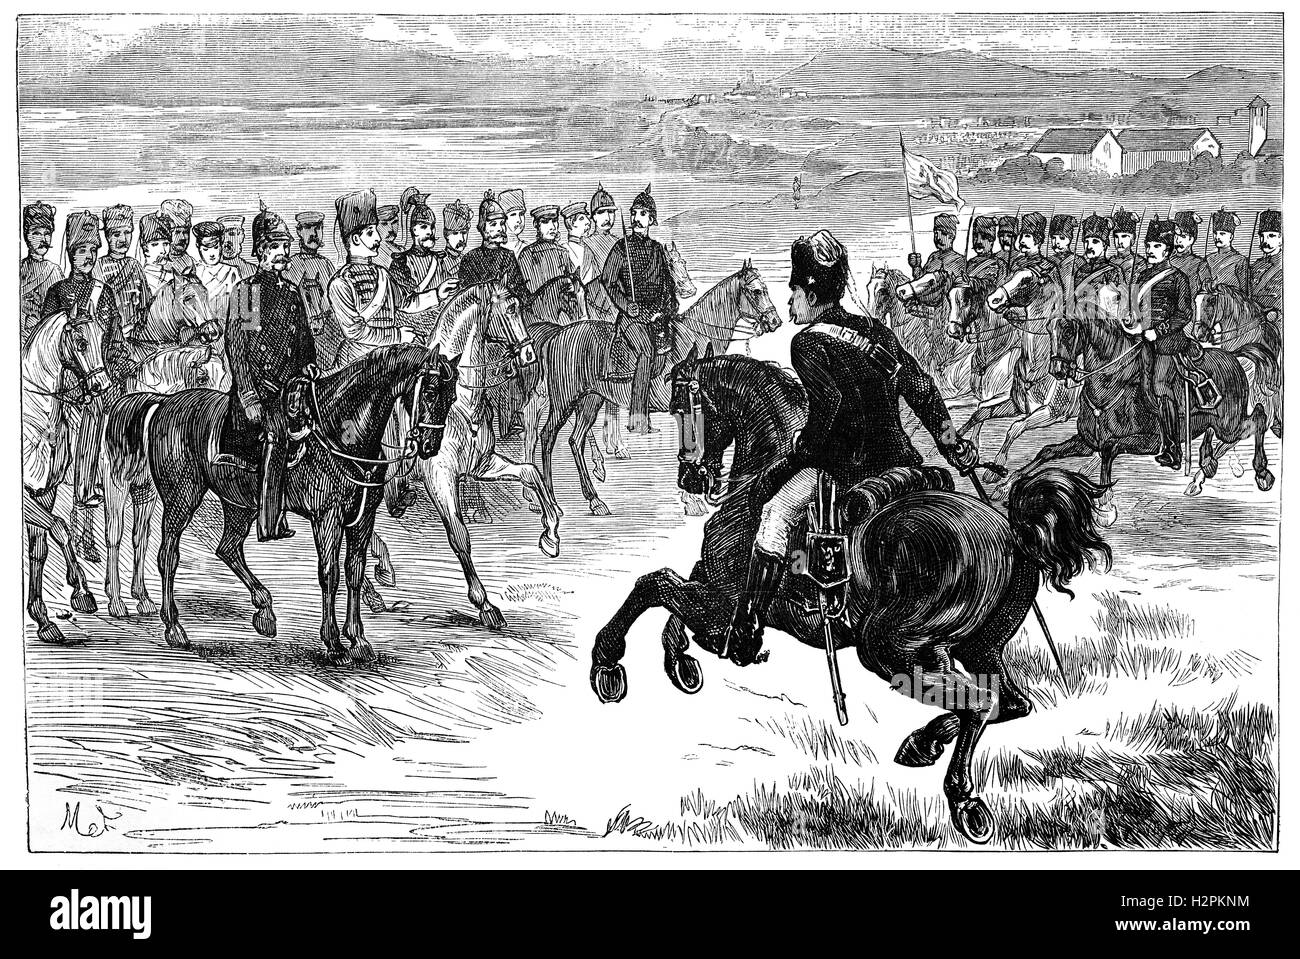 A review of the Royal Prussian Army during the time of the Wars of German unification. - Stock Image